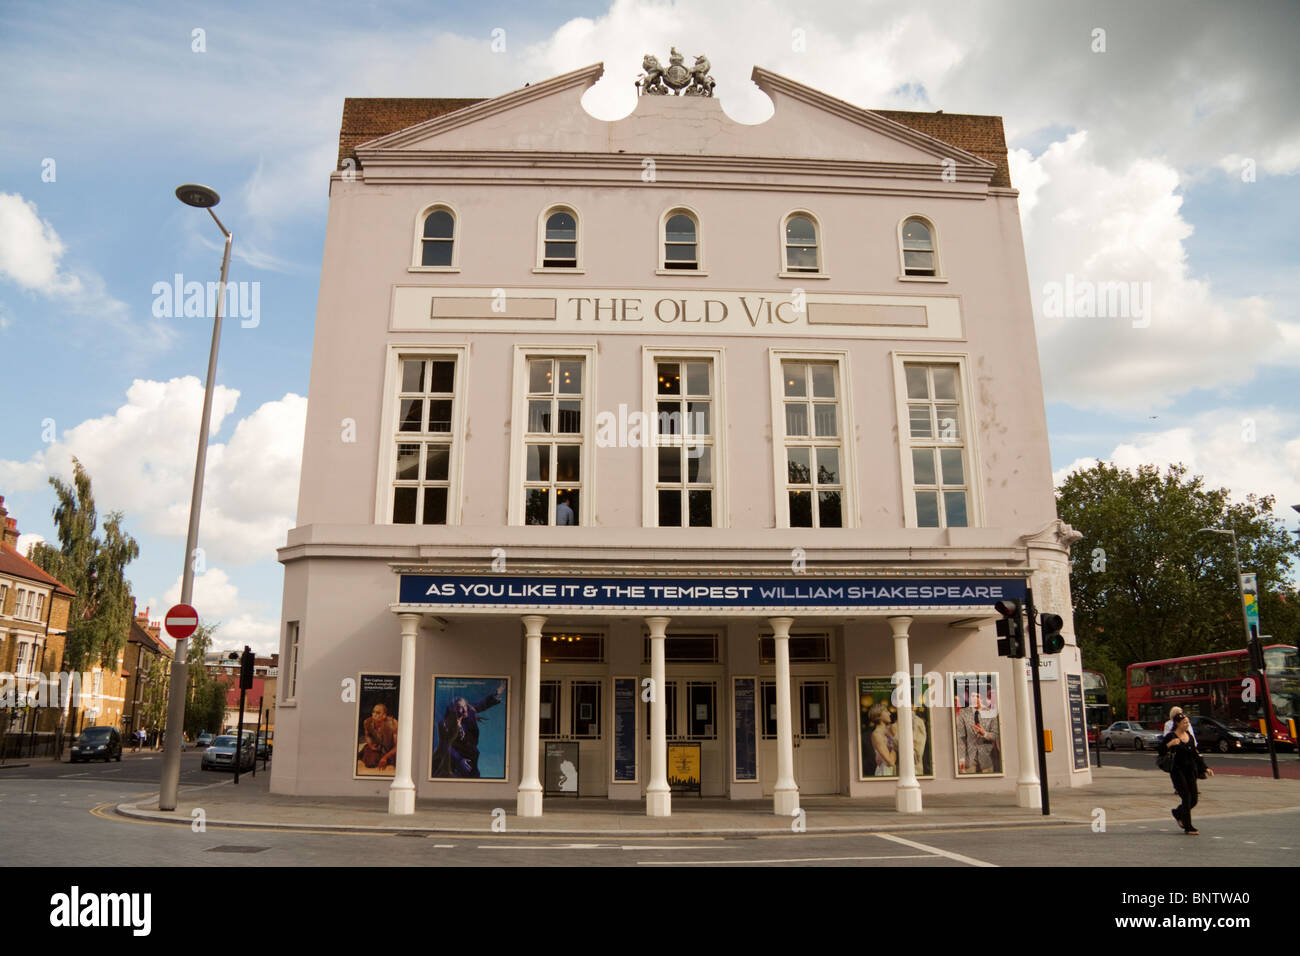 The Old Vic Theatre, The Cut, London, England, UK - Stock Image